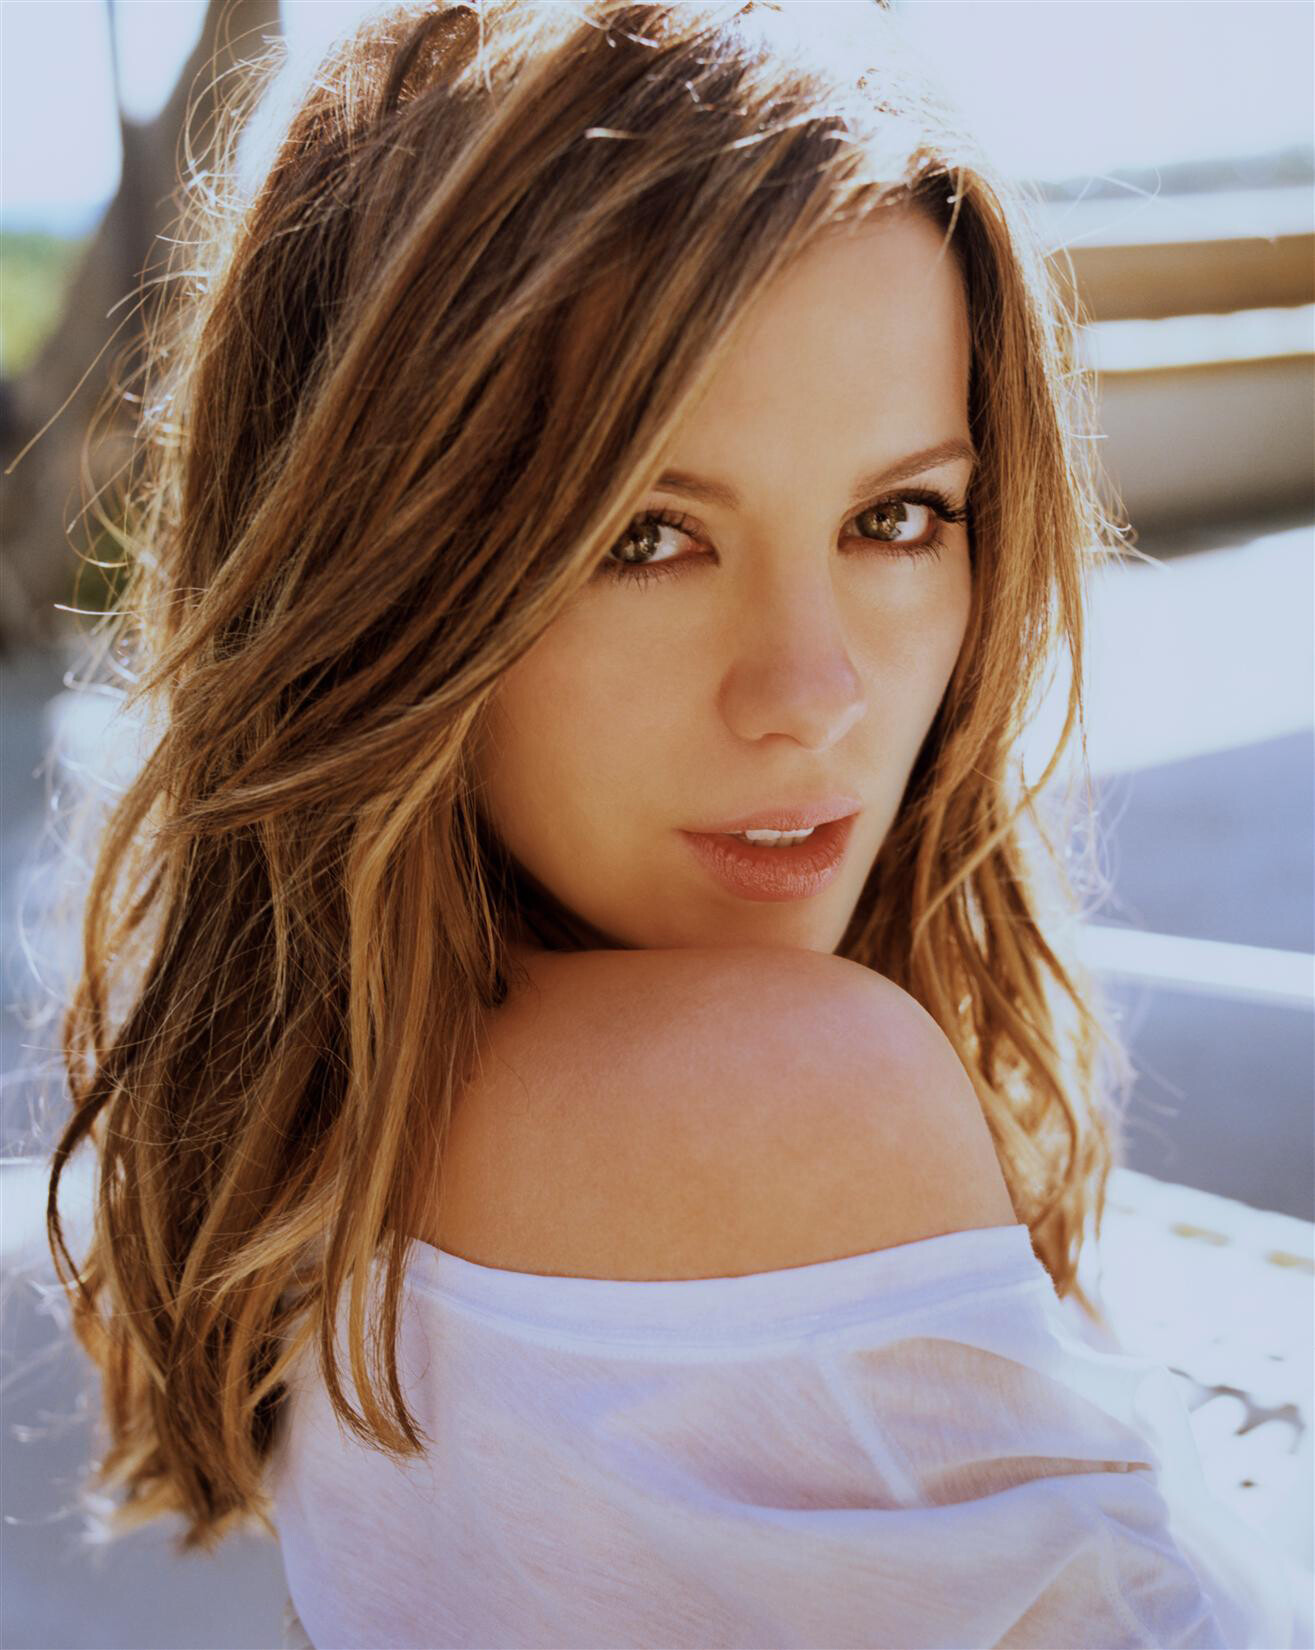 Kate Beckinsale Sexy fappenings.com 5